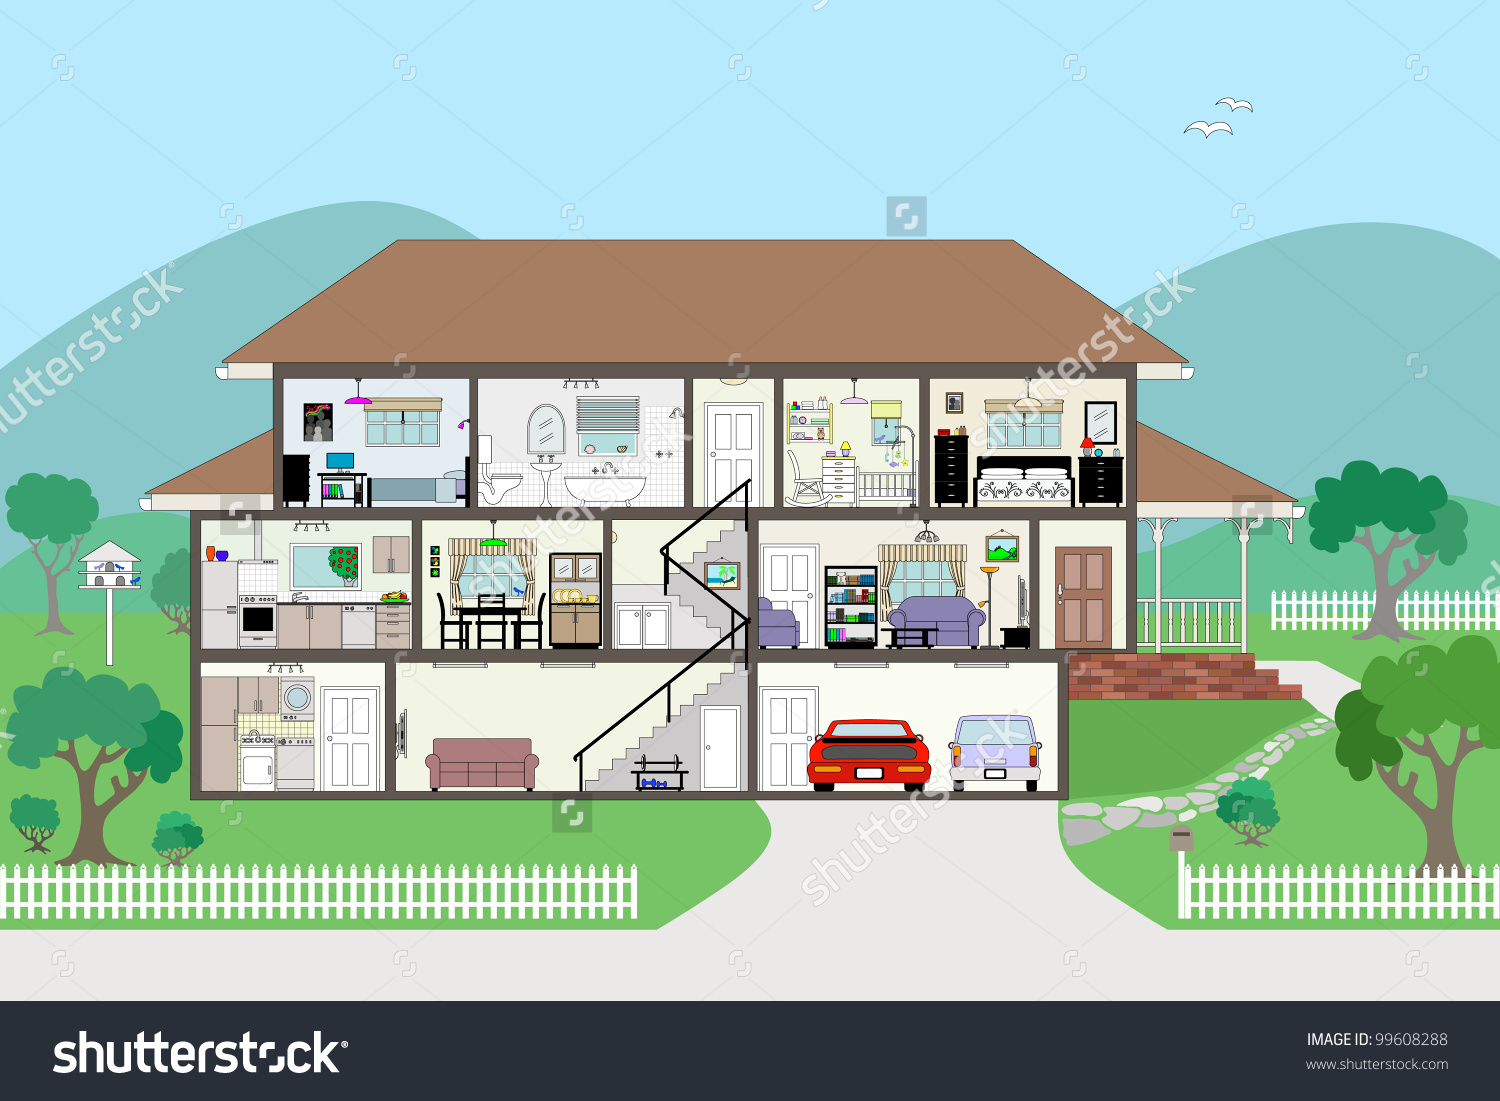 House interior clipart.